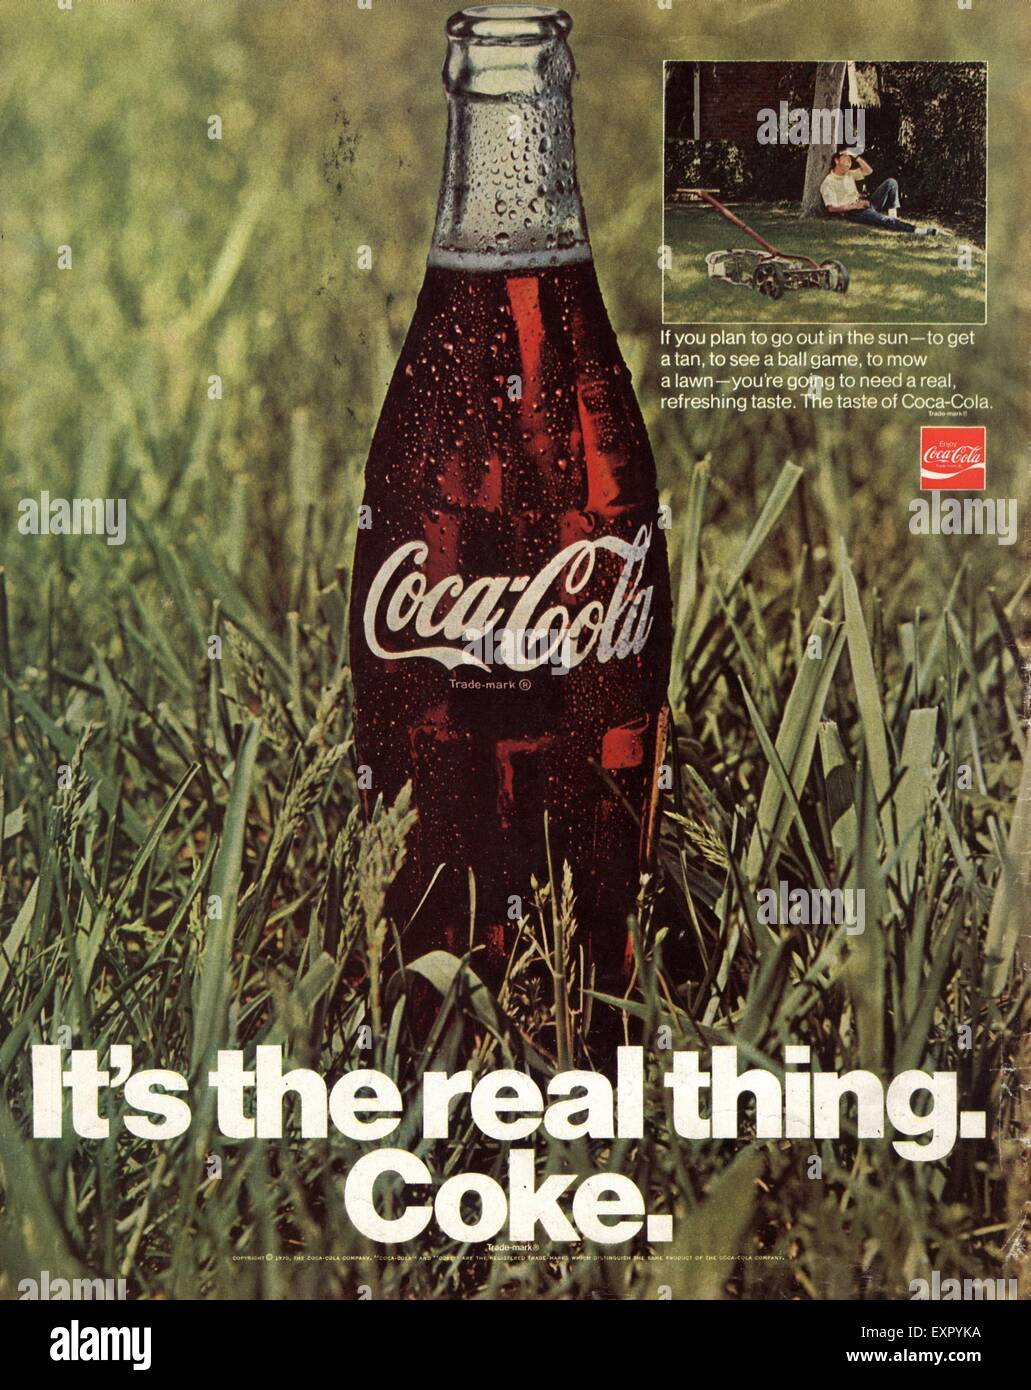 1970s USA Coca-Cola Magazine Advert Stock Photo: 85327182